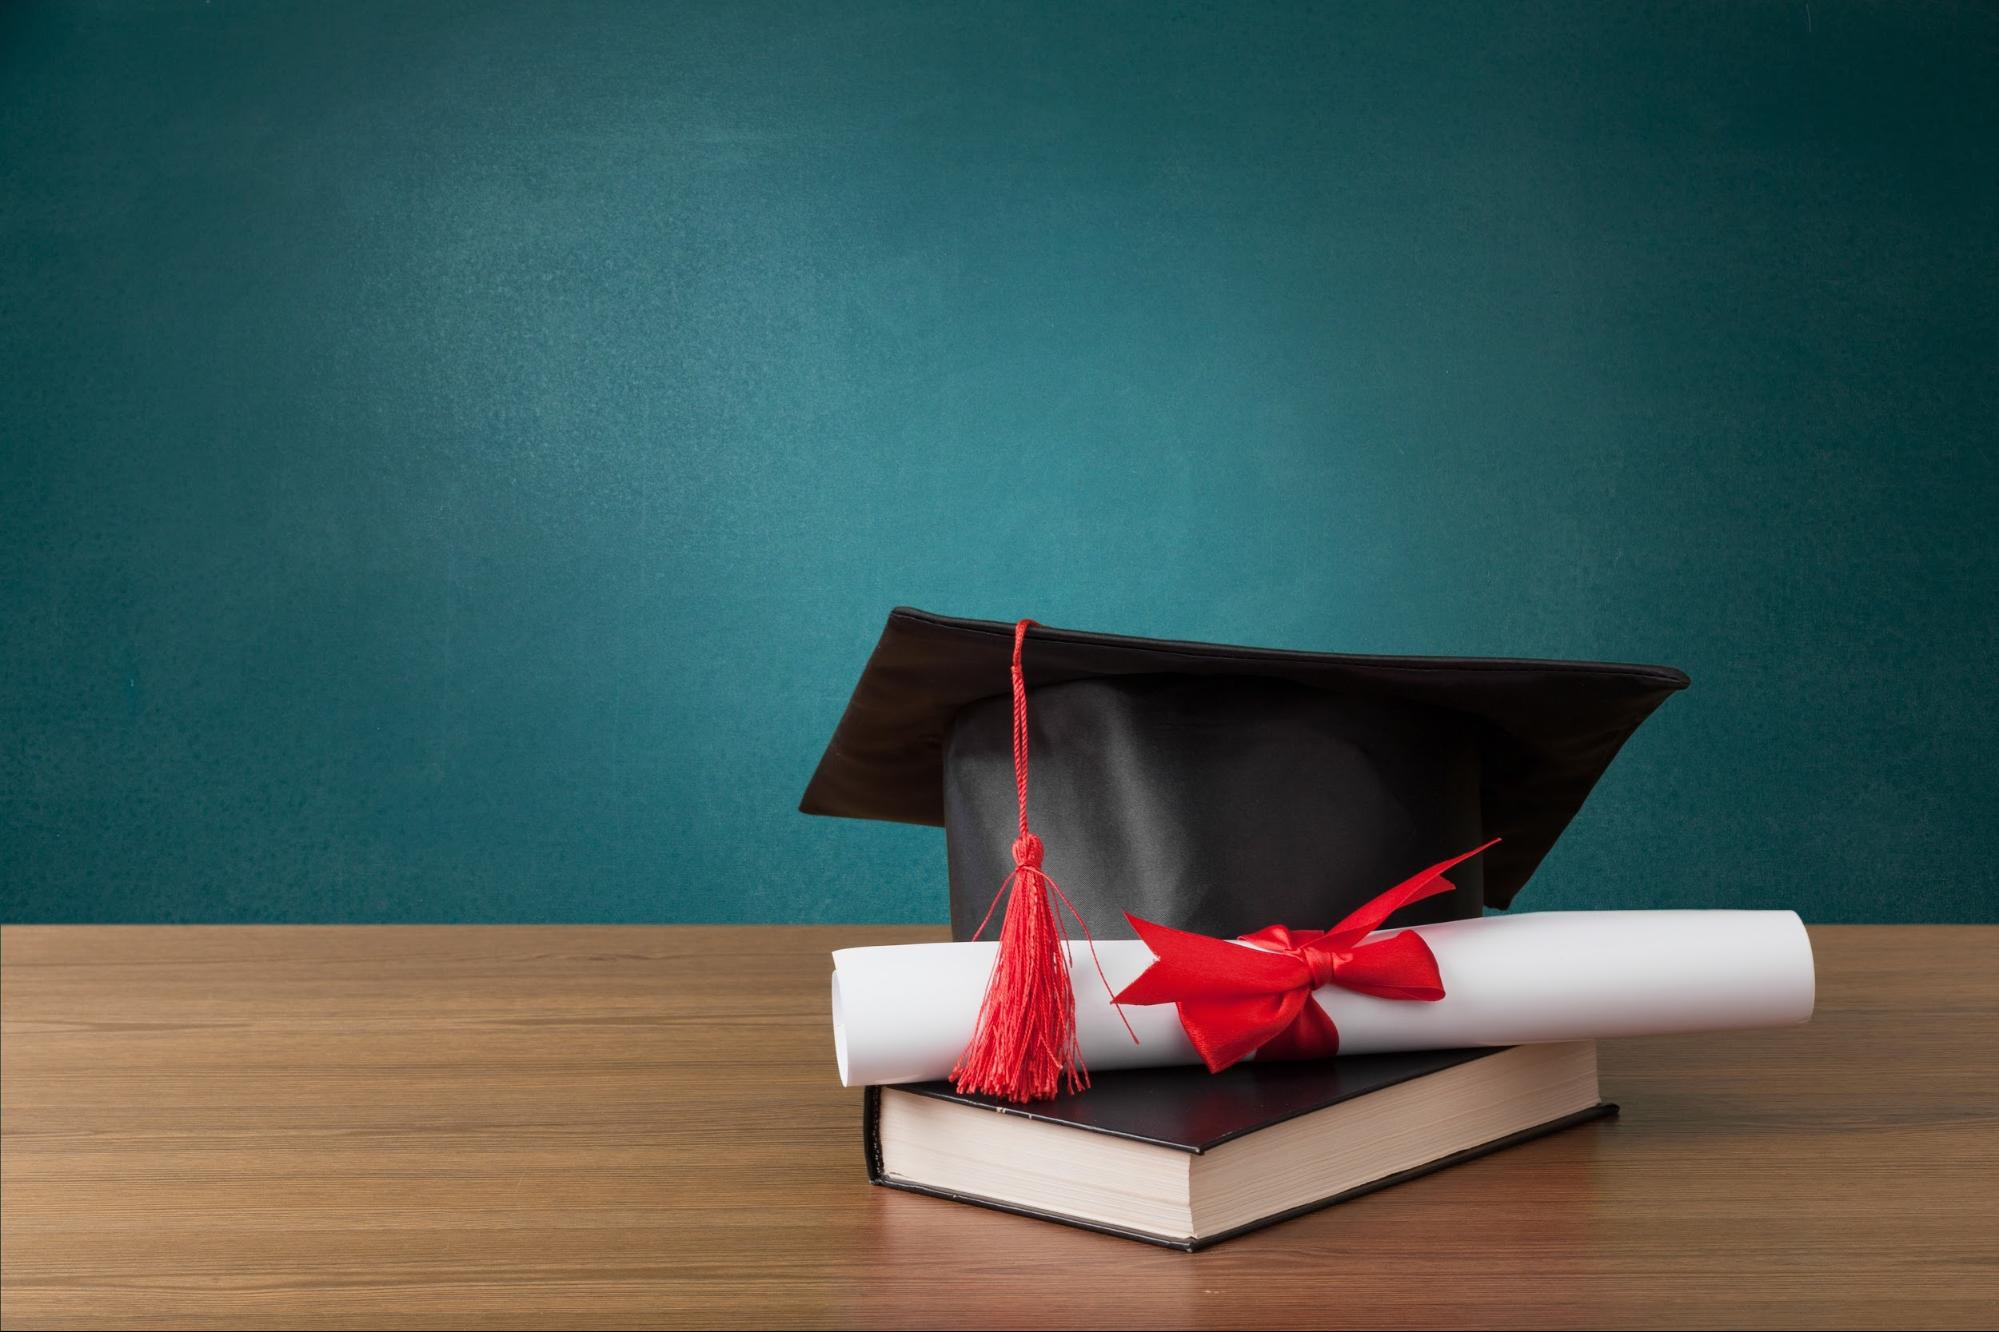 internships after graduation: Graduation cap, diploma and book on top of wooden table against a green background